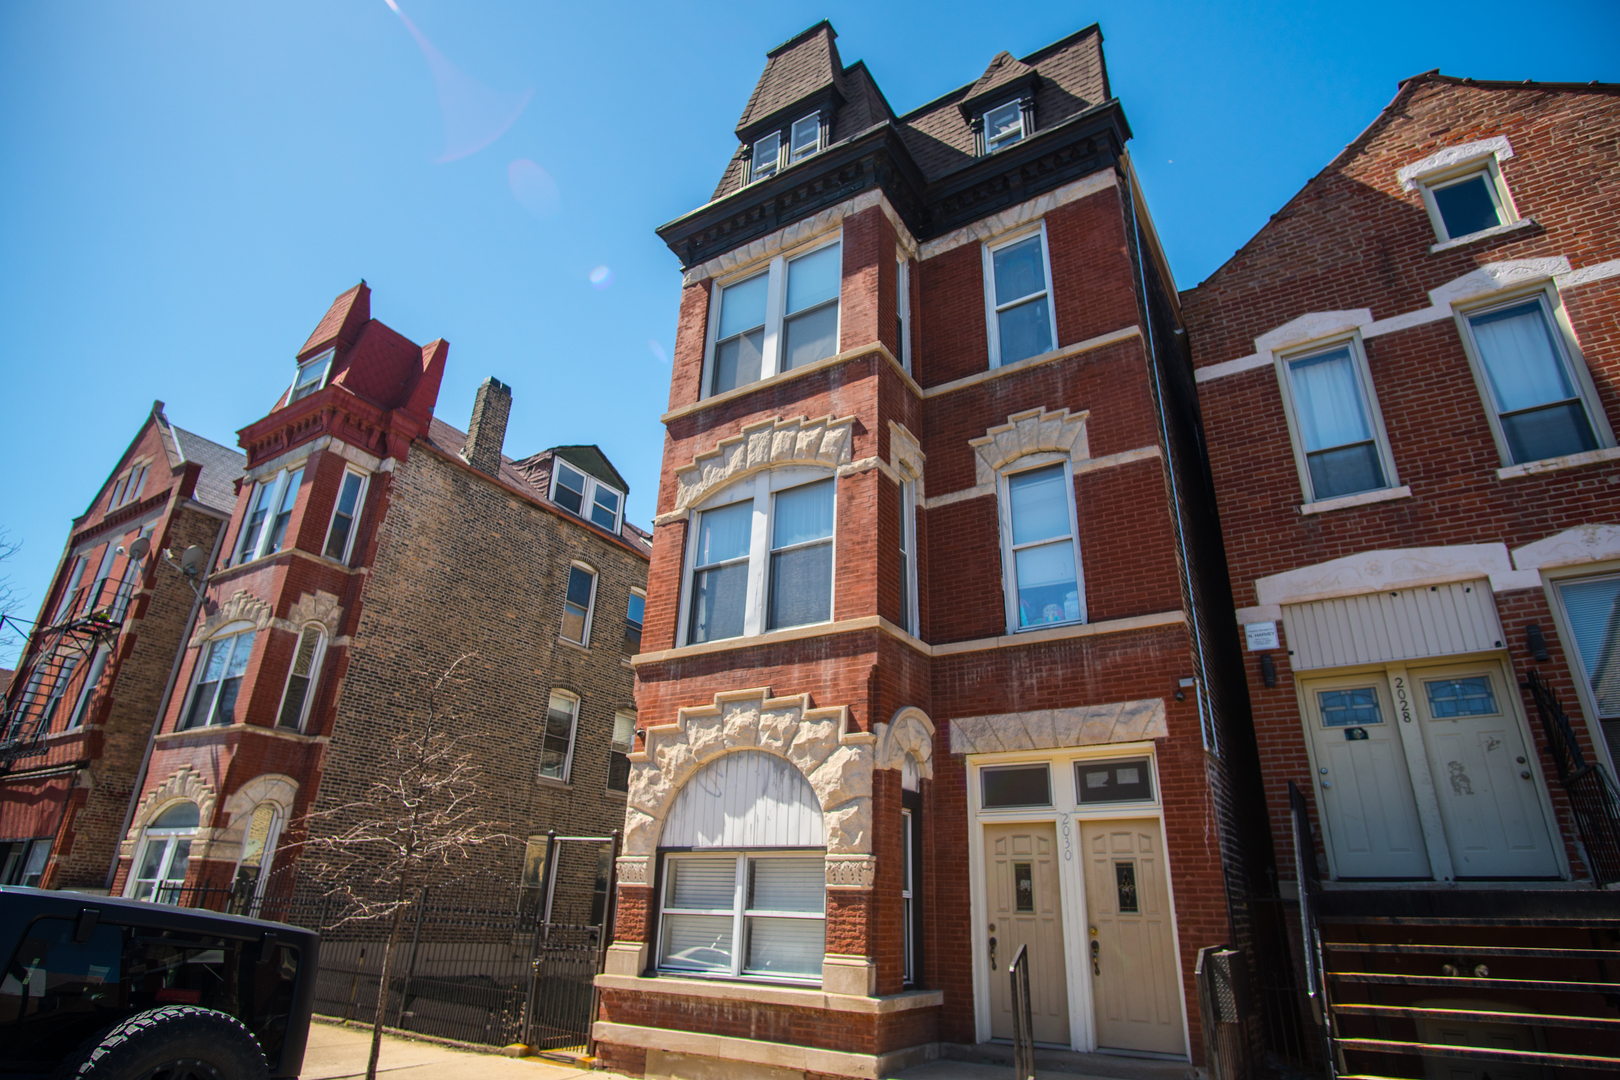 2030 Coulter ,Chicago, Illinois 60608